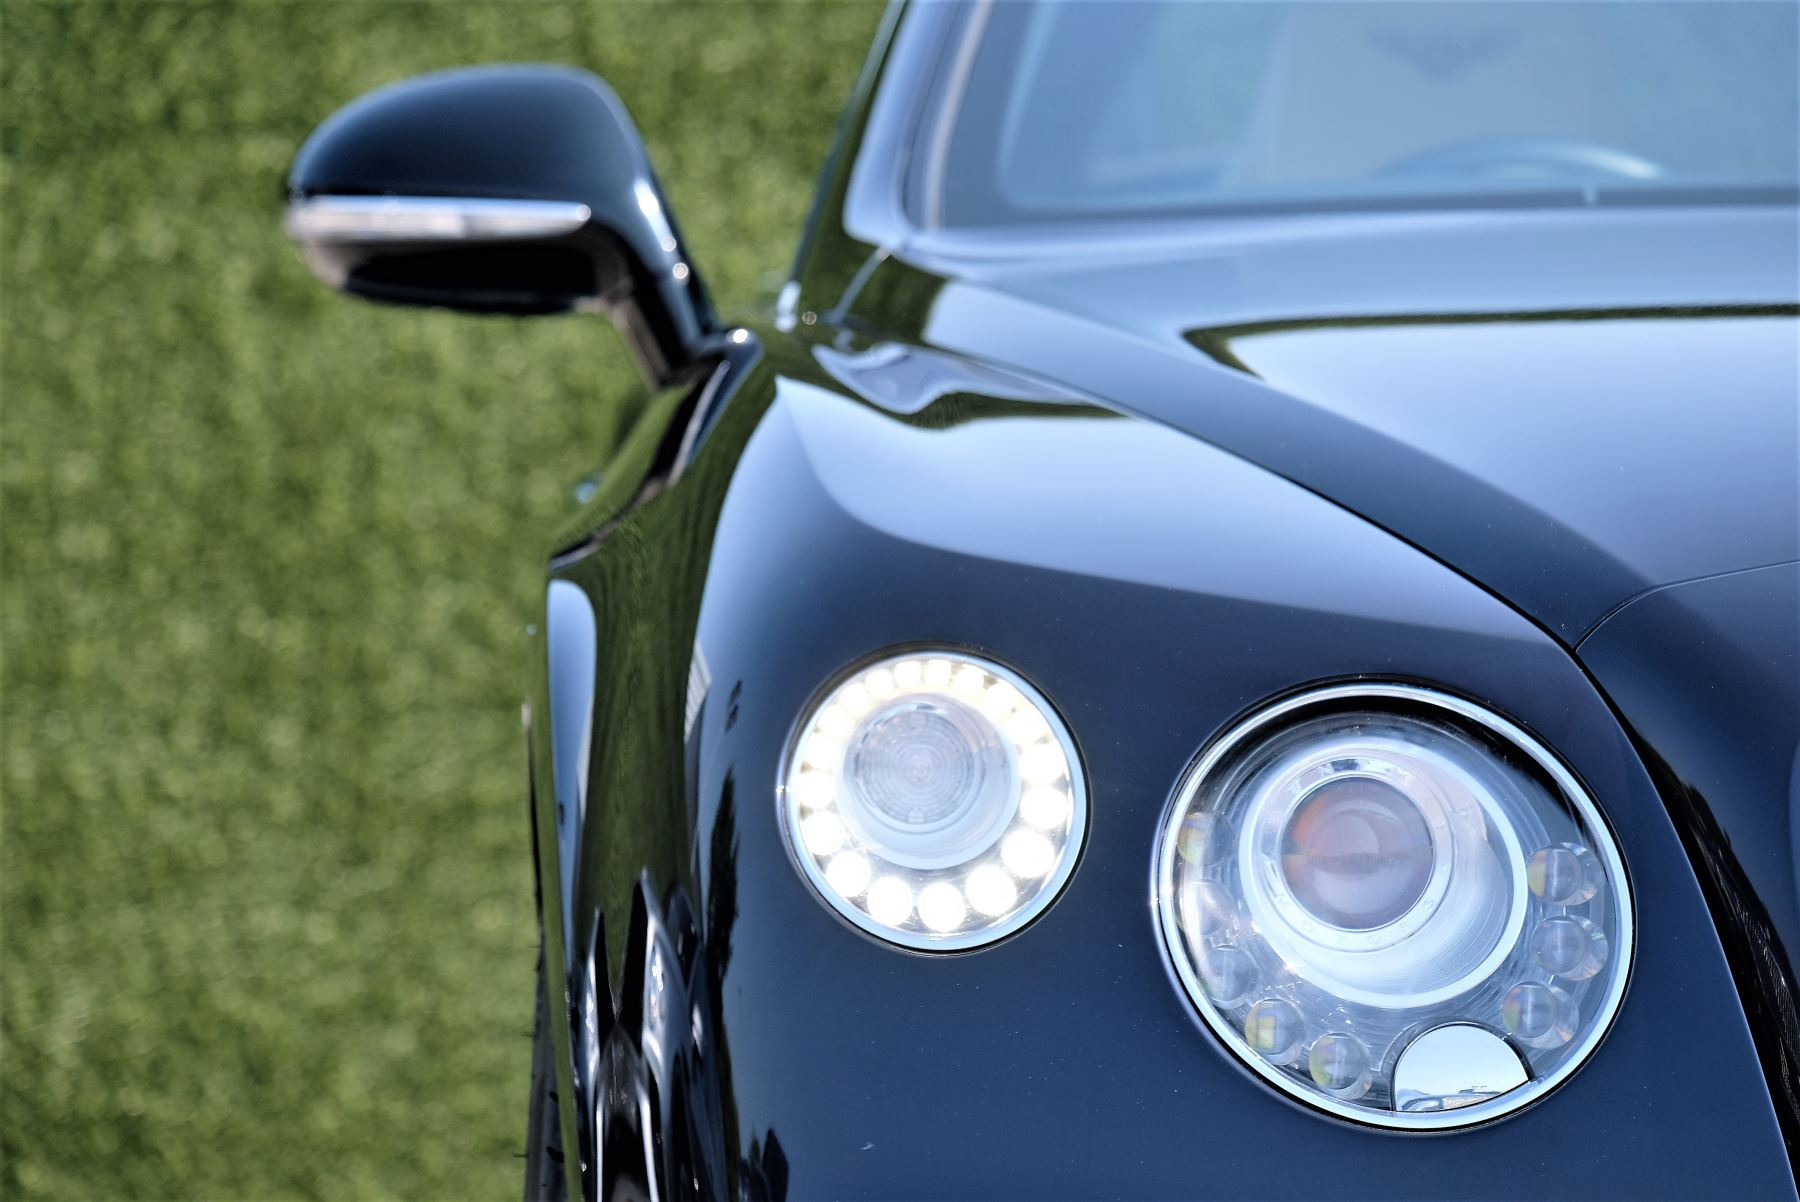 Bentley Continental GT V8 S Coupe 4.0 V8 S 2dr Auto Mulliner Driving Specification image 6